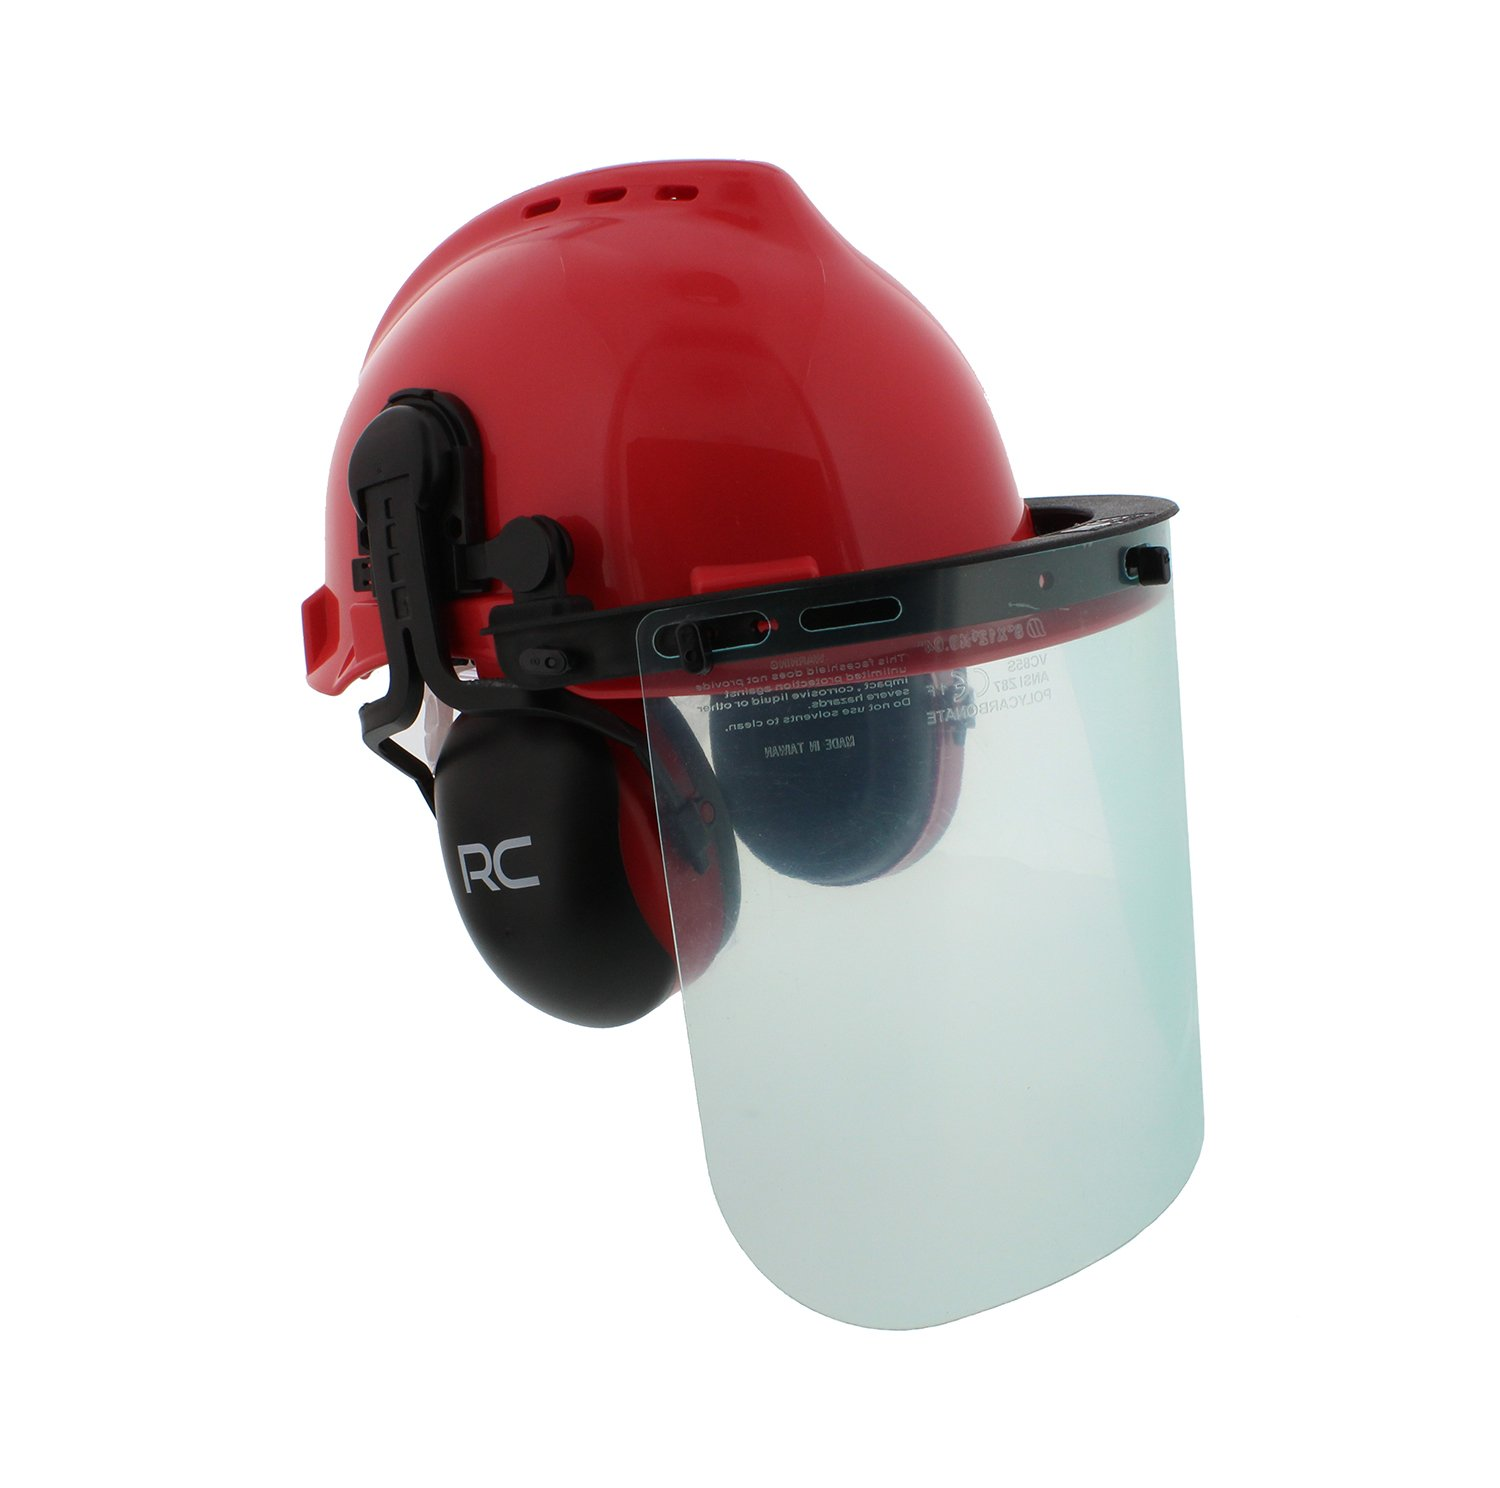 b8453eef2f2 Forestry Safety Helmet - Vented Hard Hat